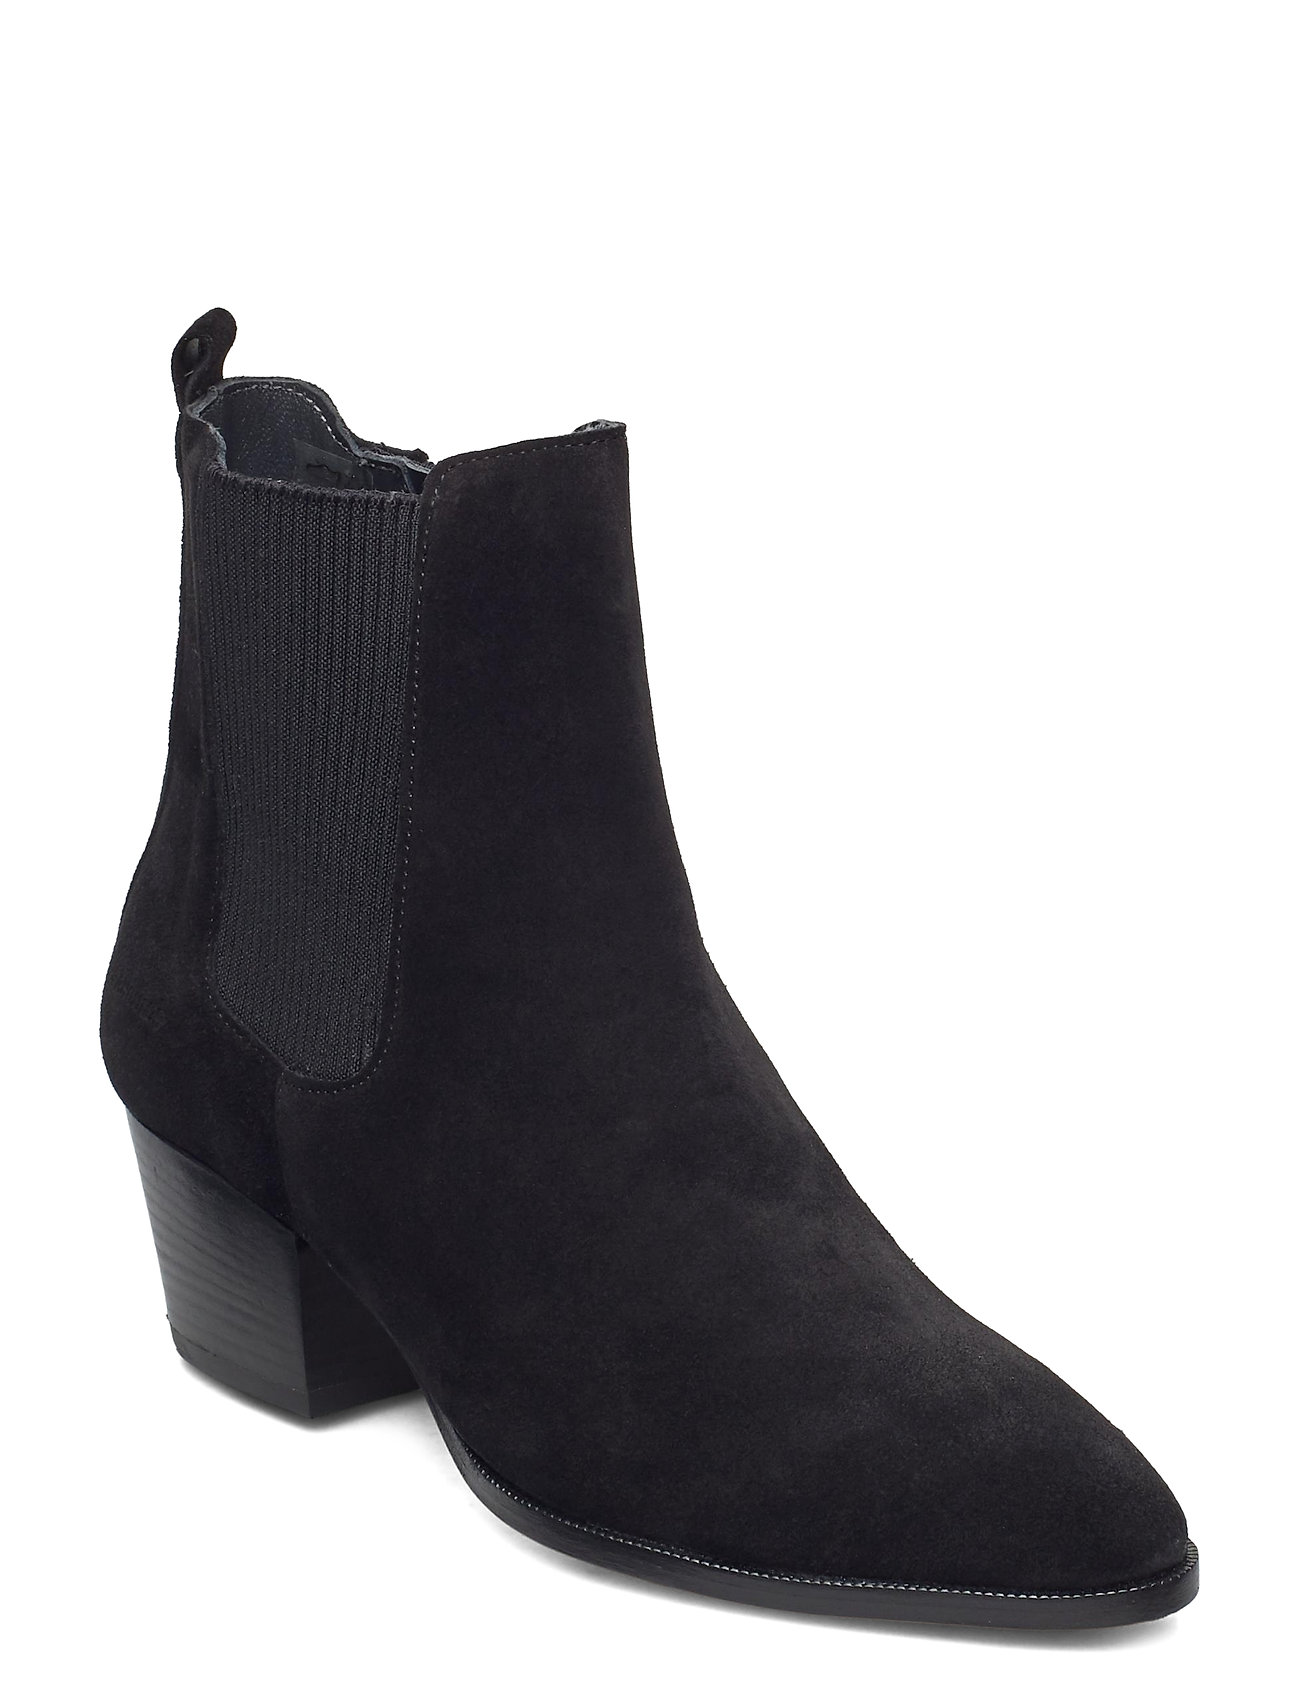 Image of Booties - Block Heel - With Elas Shoes Boots Ankle Boots Ankle Boot - Heel Sort ANGULUS (3471452231)